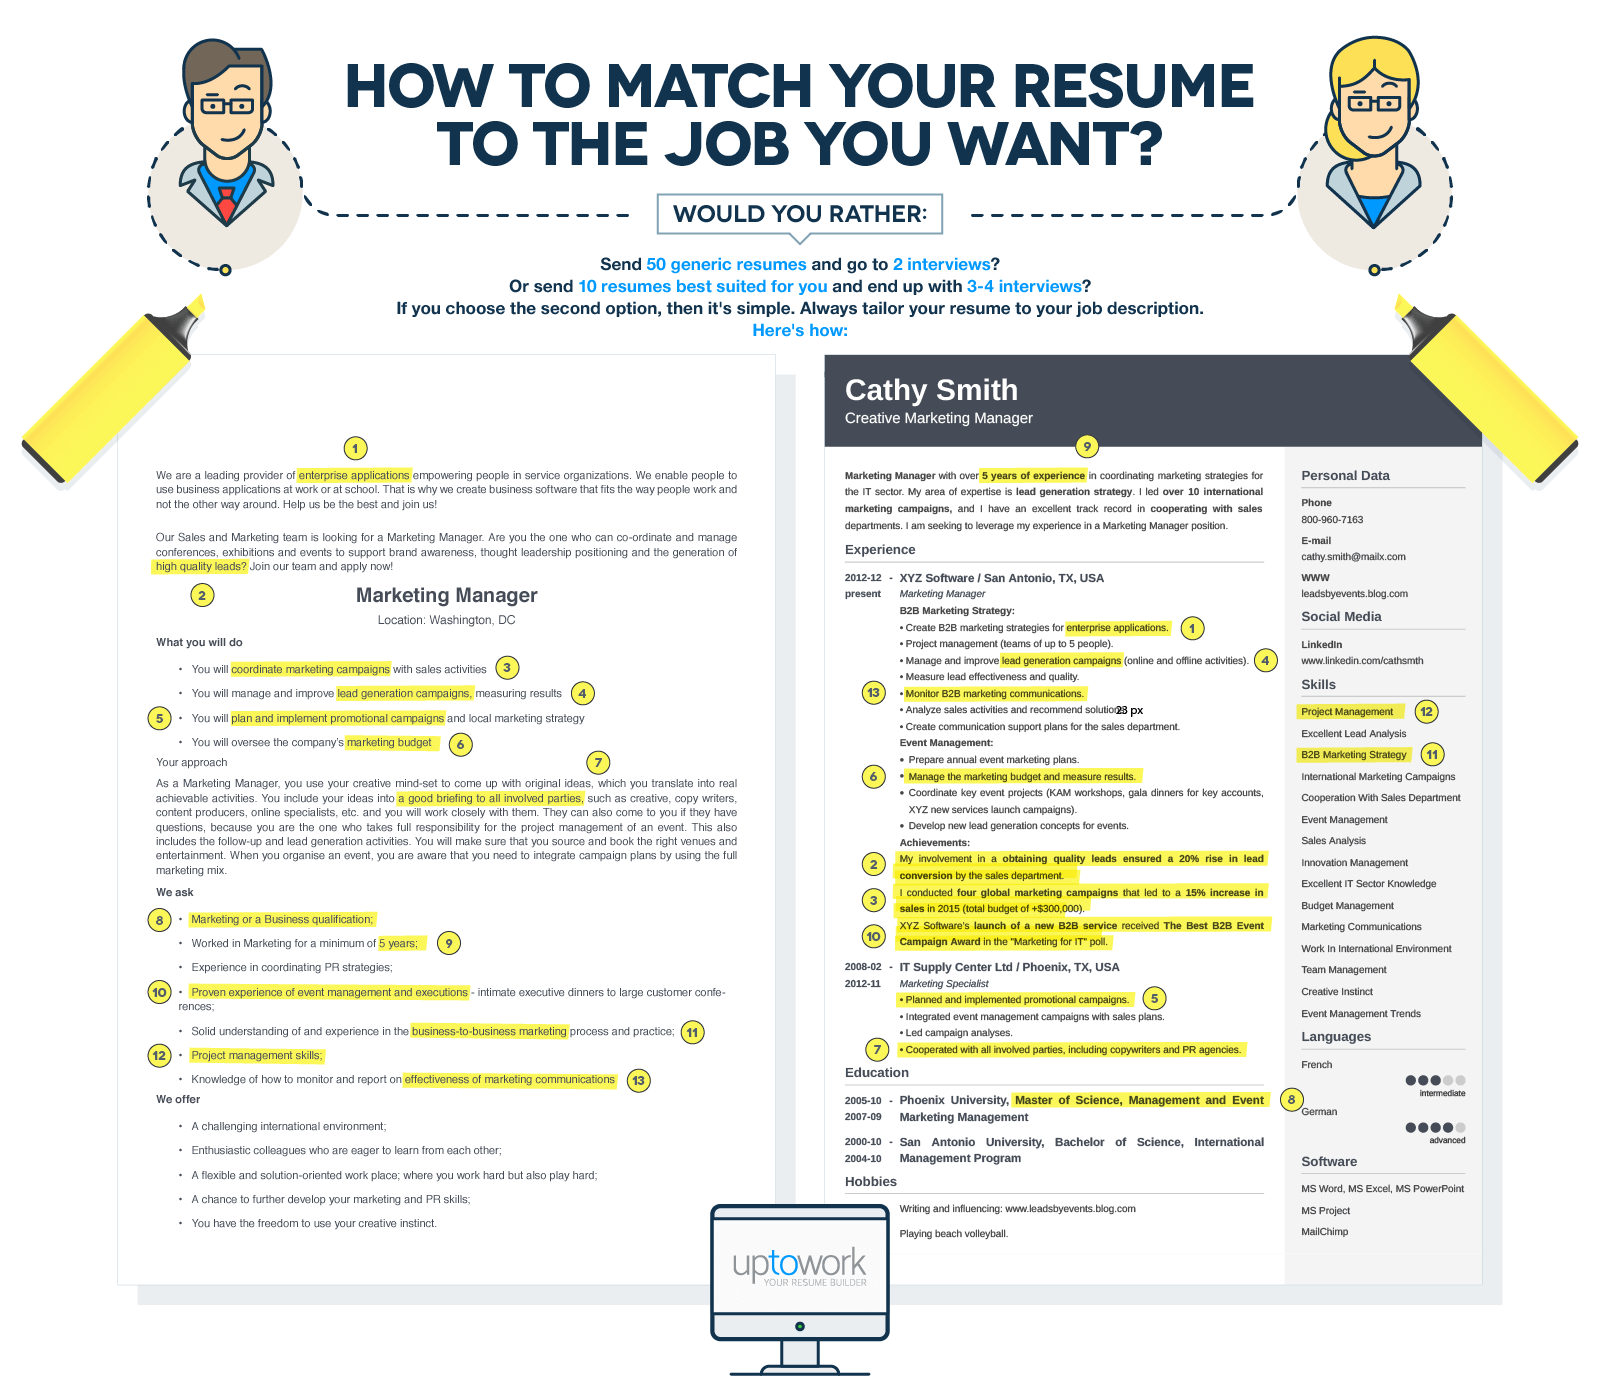 explore make a resume resume tips and more - Steps In Making Resume